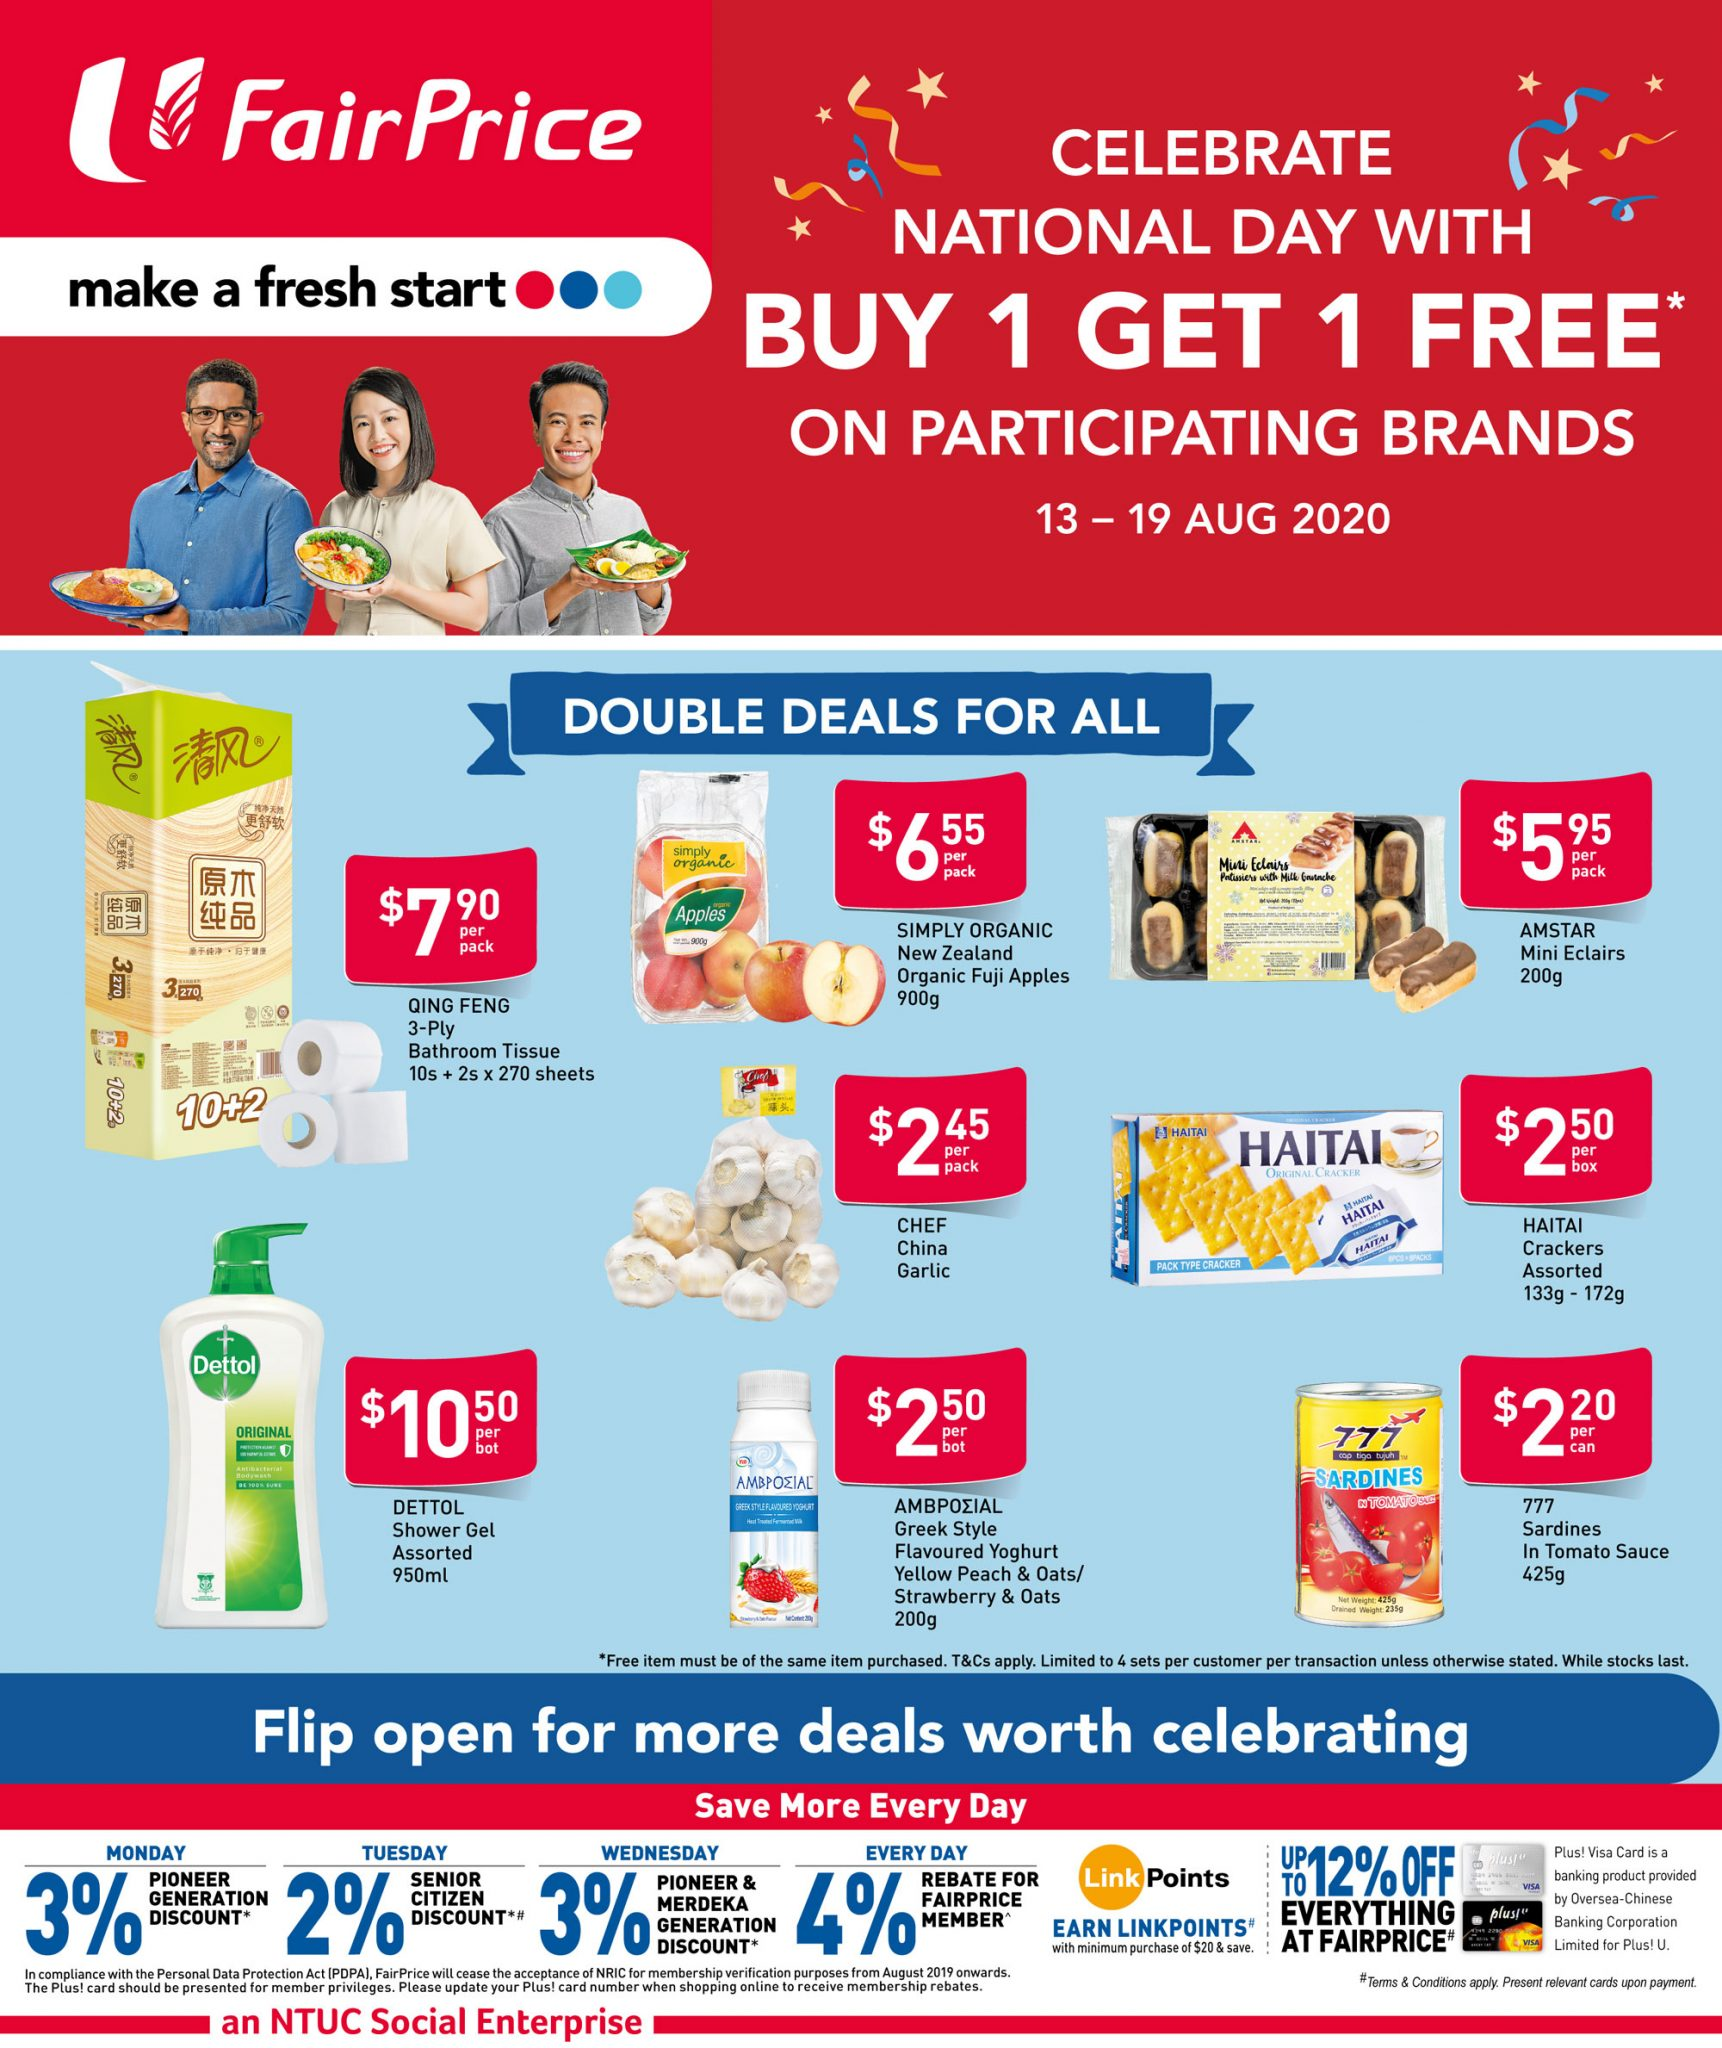 FairPrice 1-for-1 till 19 August